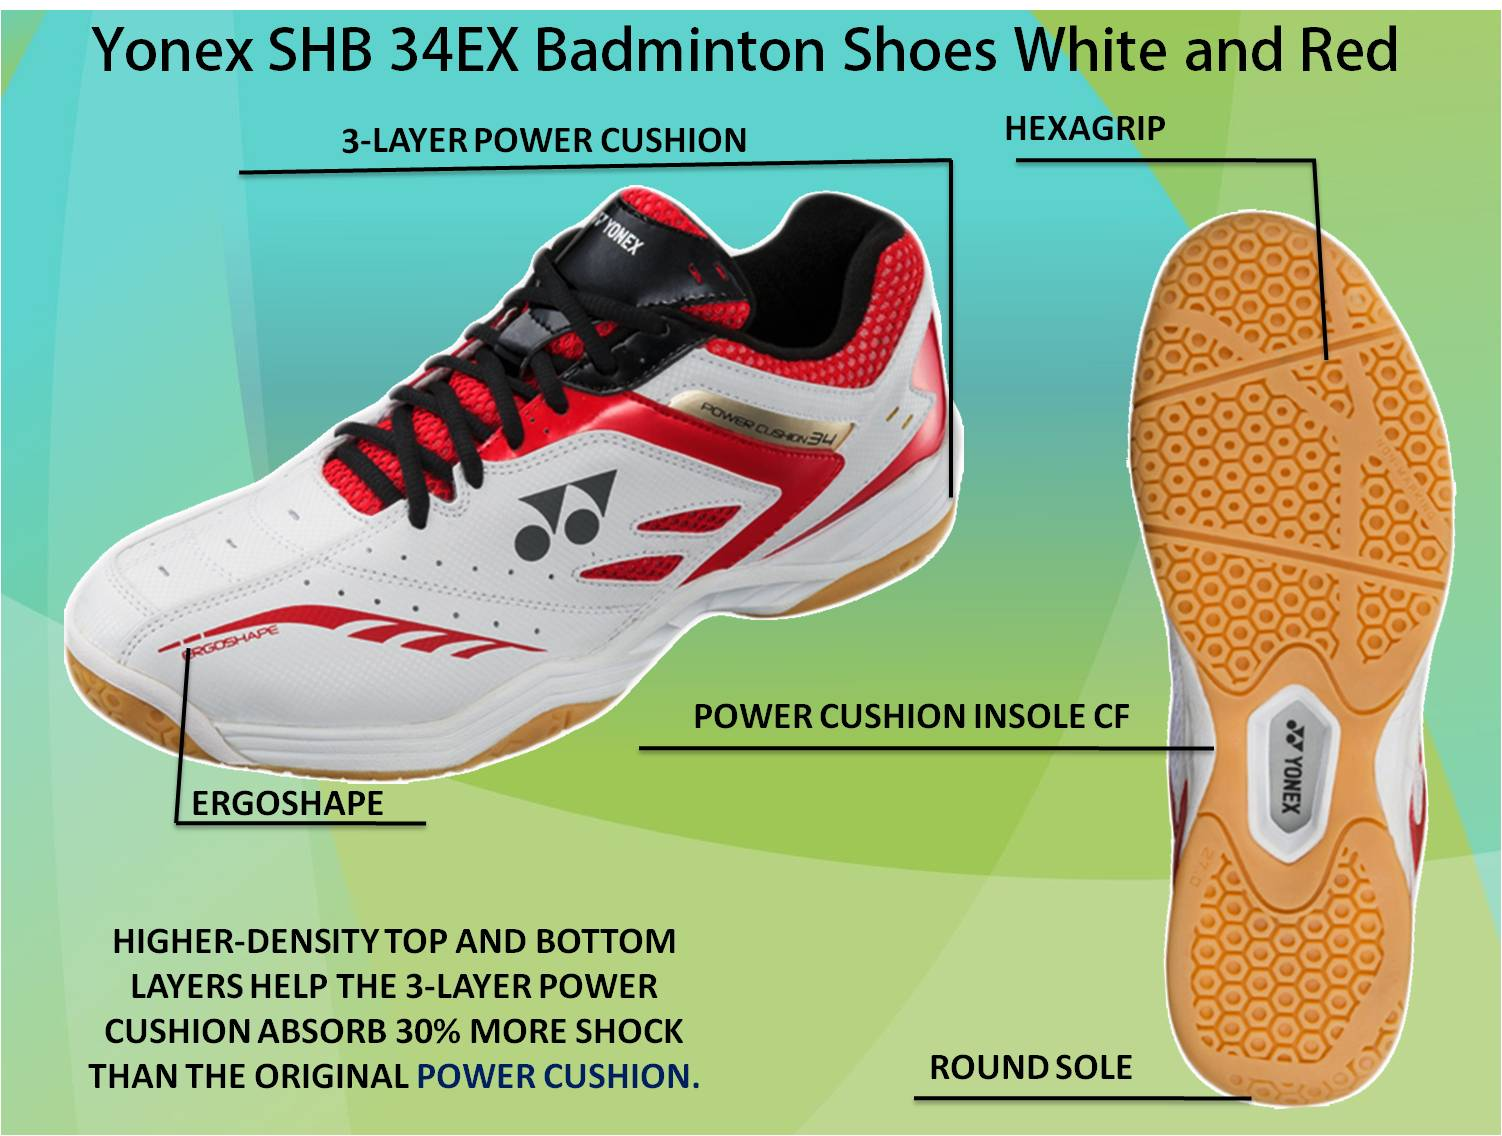 Yonex SHB 34 EX Badminton Shoes White and Red